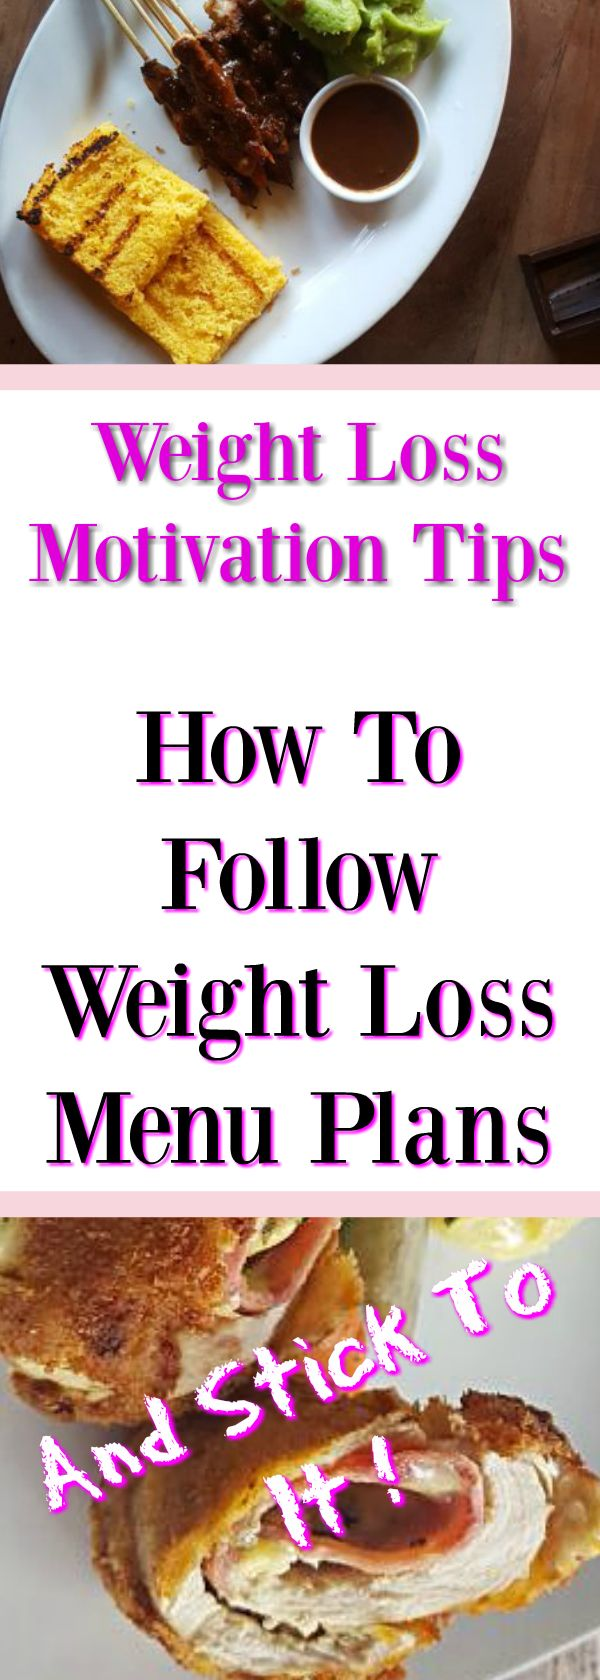 Nutritionist tips for weight loss menu plan, following a low carb meal plan or keto menu plan can be a great choice for a healthy weight loss program.